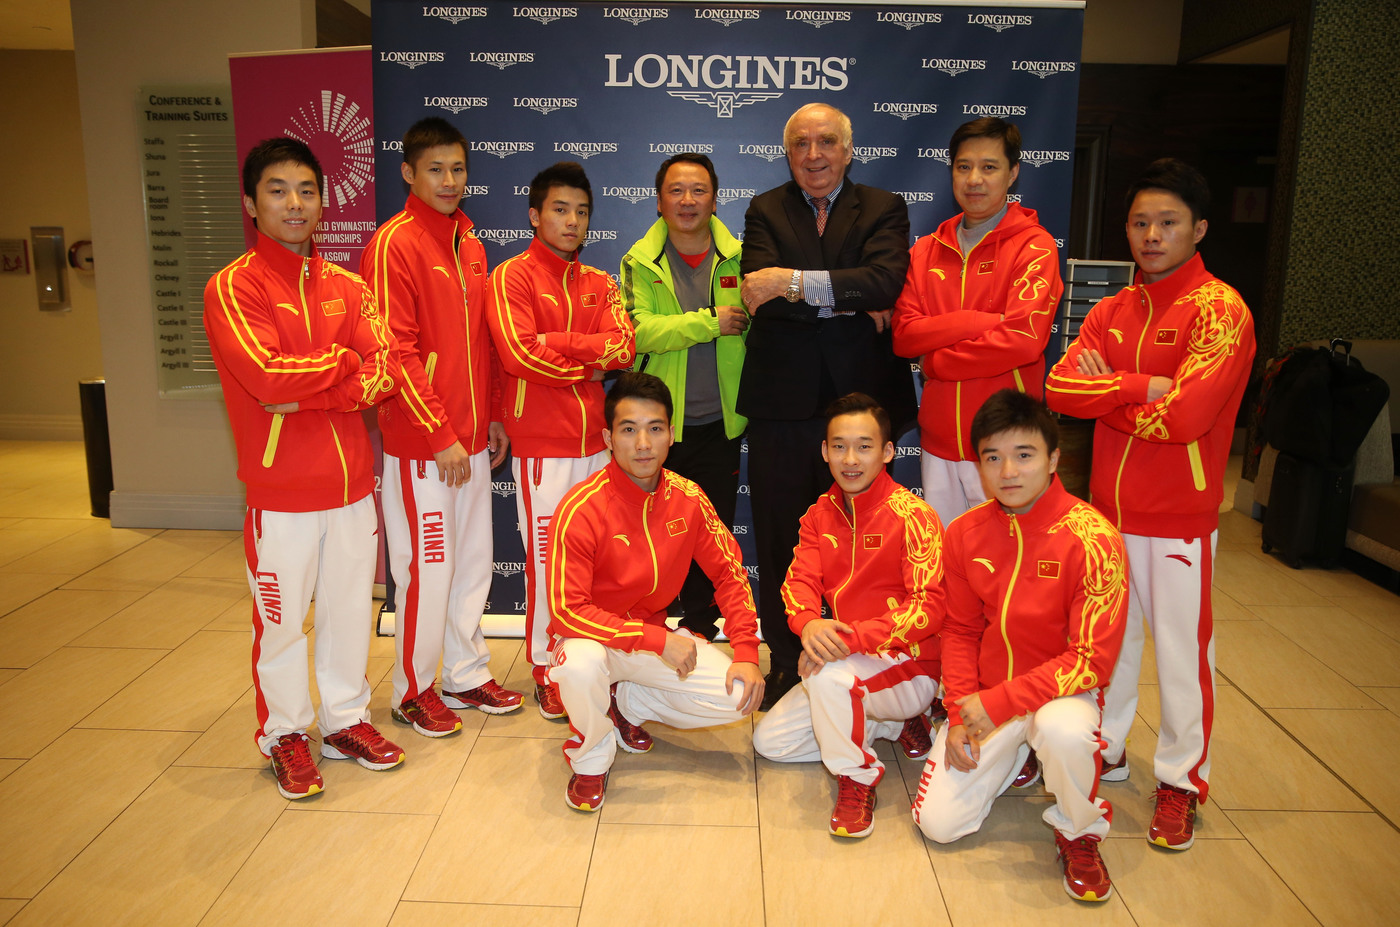 Longines Gymnastics Event: Elegance and performance to be celebrated at the 46th Artistic Gymnastics World Championships 3